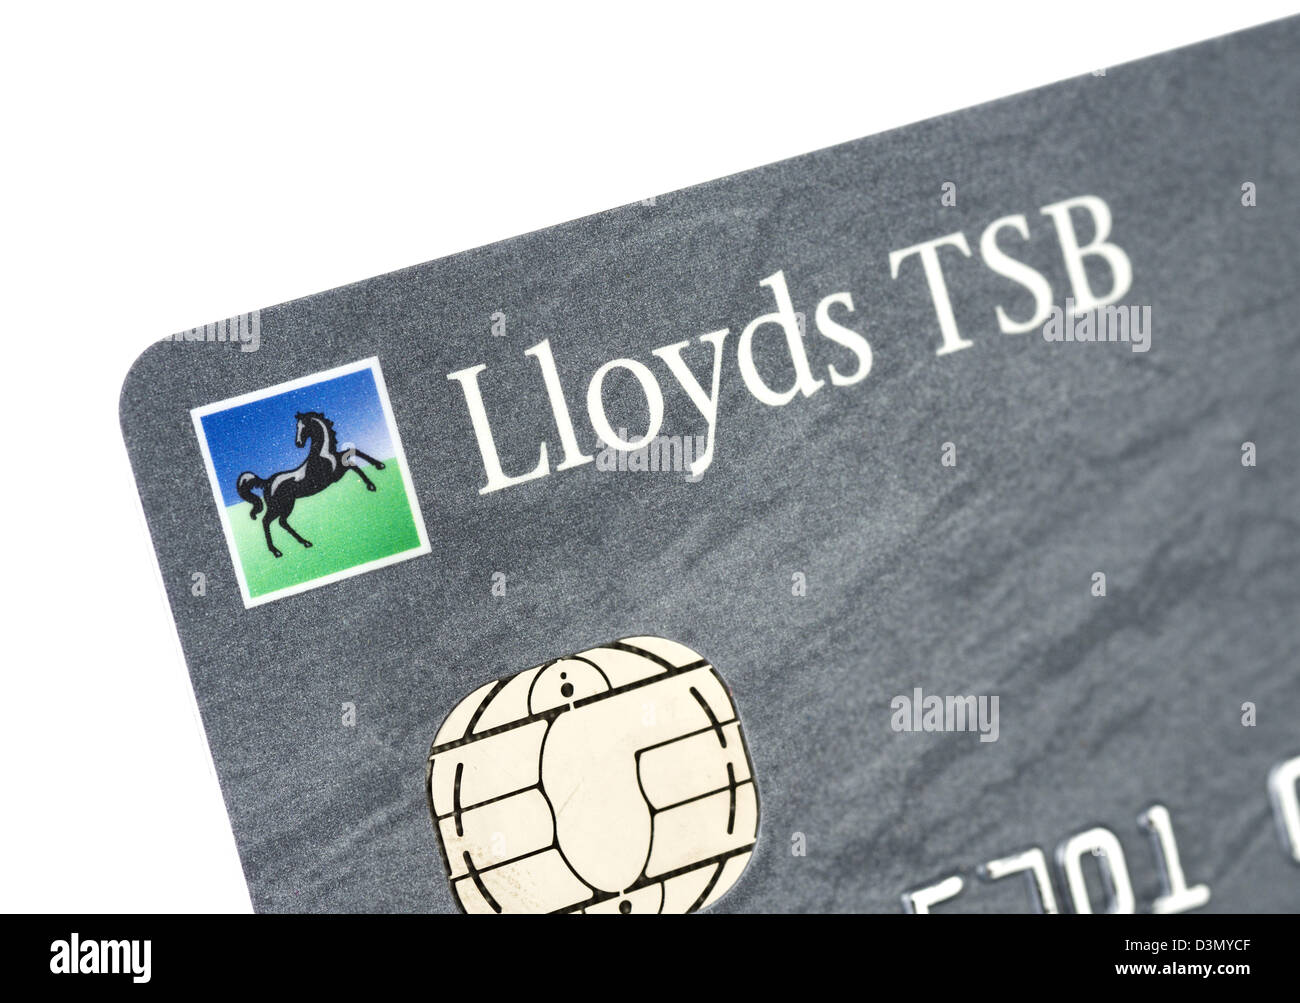 Lloyds tsb bank credit card issued in the uk stock photo 53935631 lloyds tsb bank credit card issued in the uk colourmoves